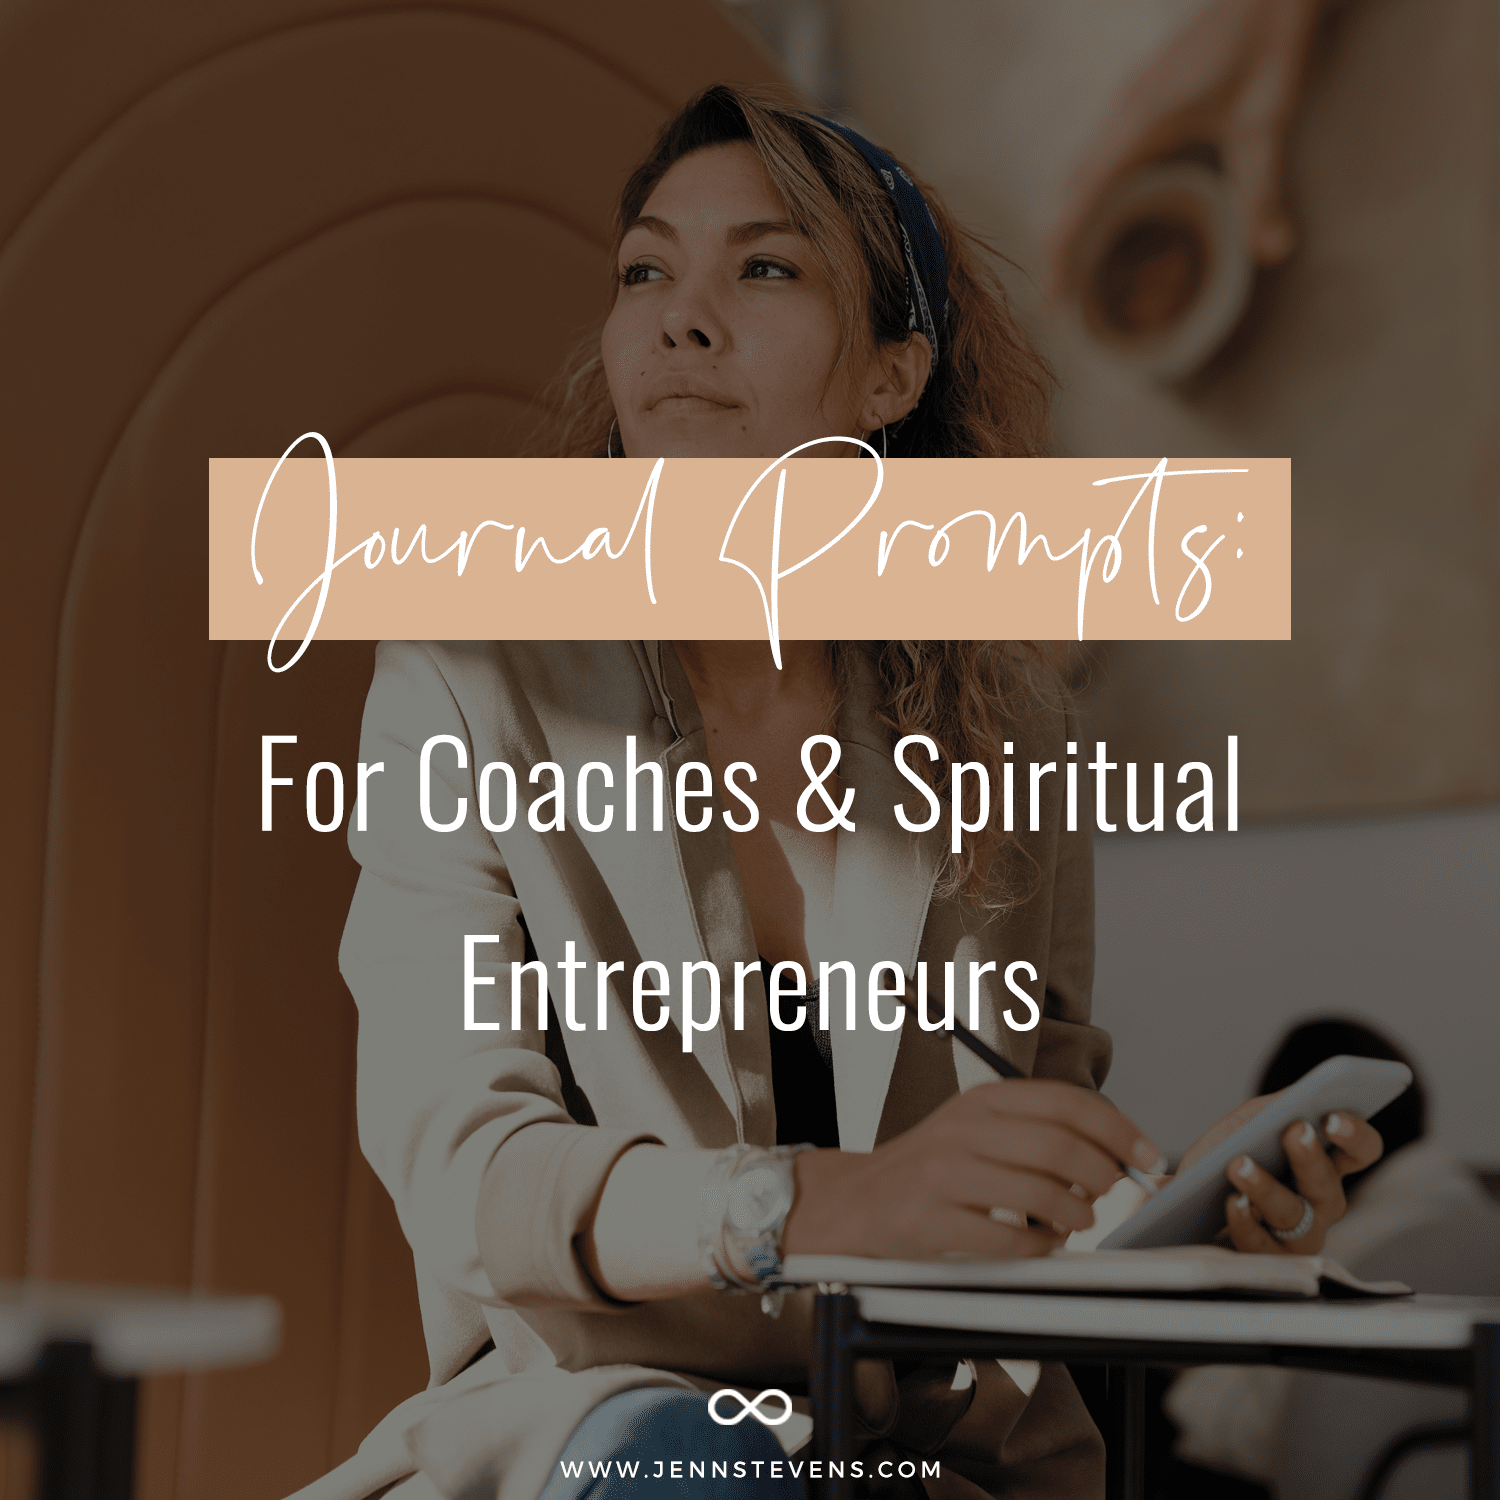 25 Journal Prompts For Coaches & Spiritual Entrepreneurs